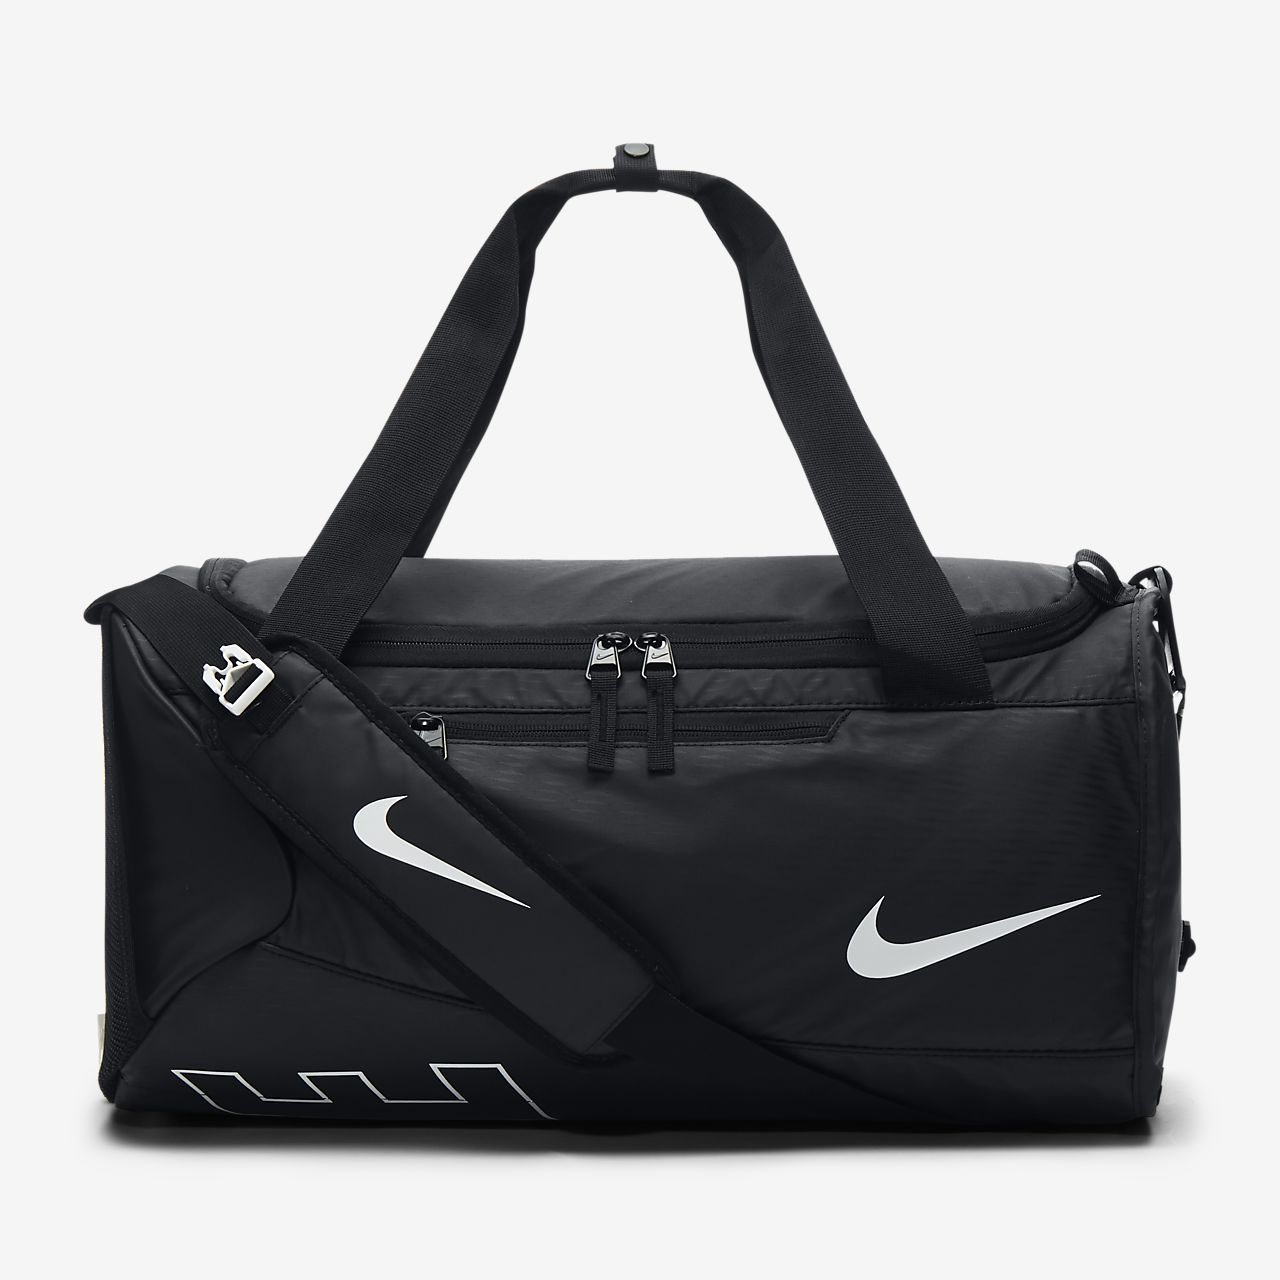 Nike Sac de sport Alpha adapt cross body M 7XXwCLSMoF